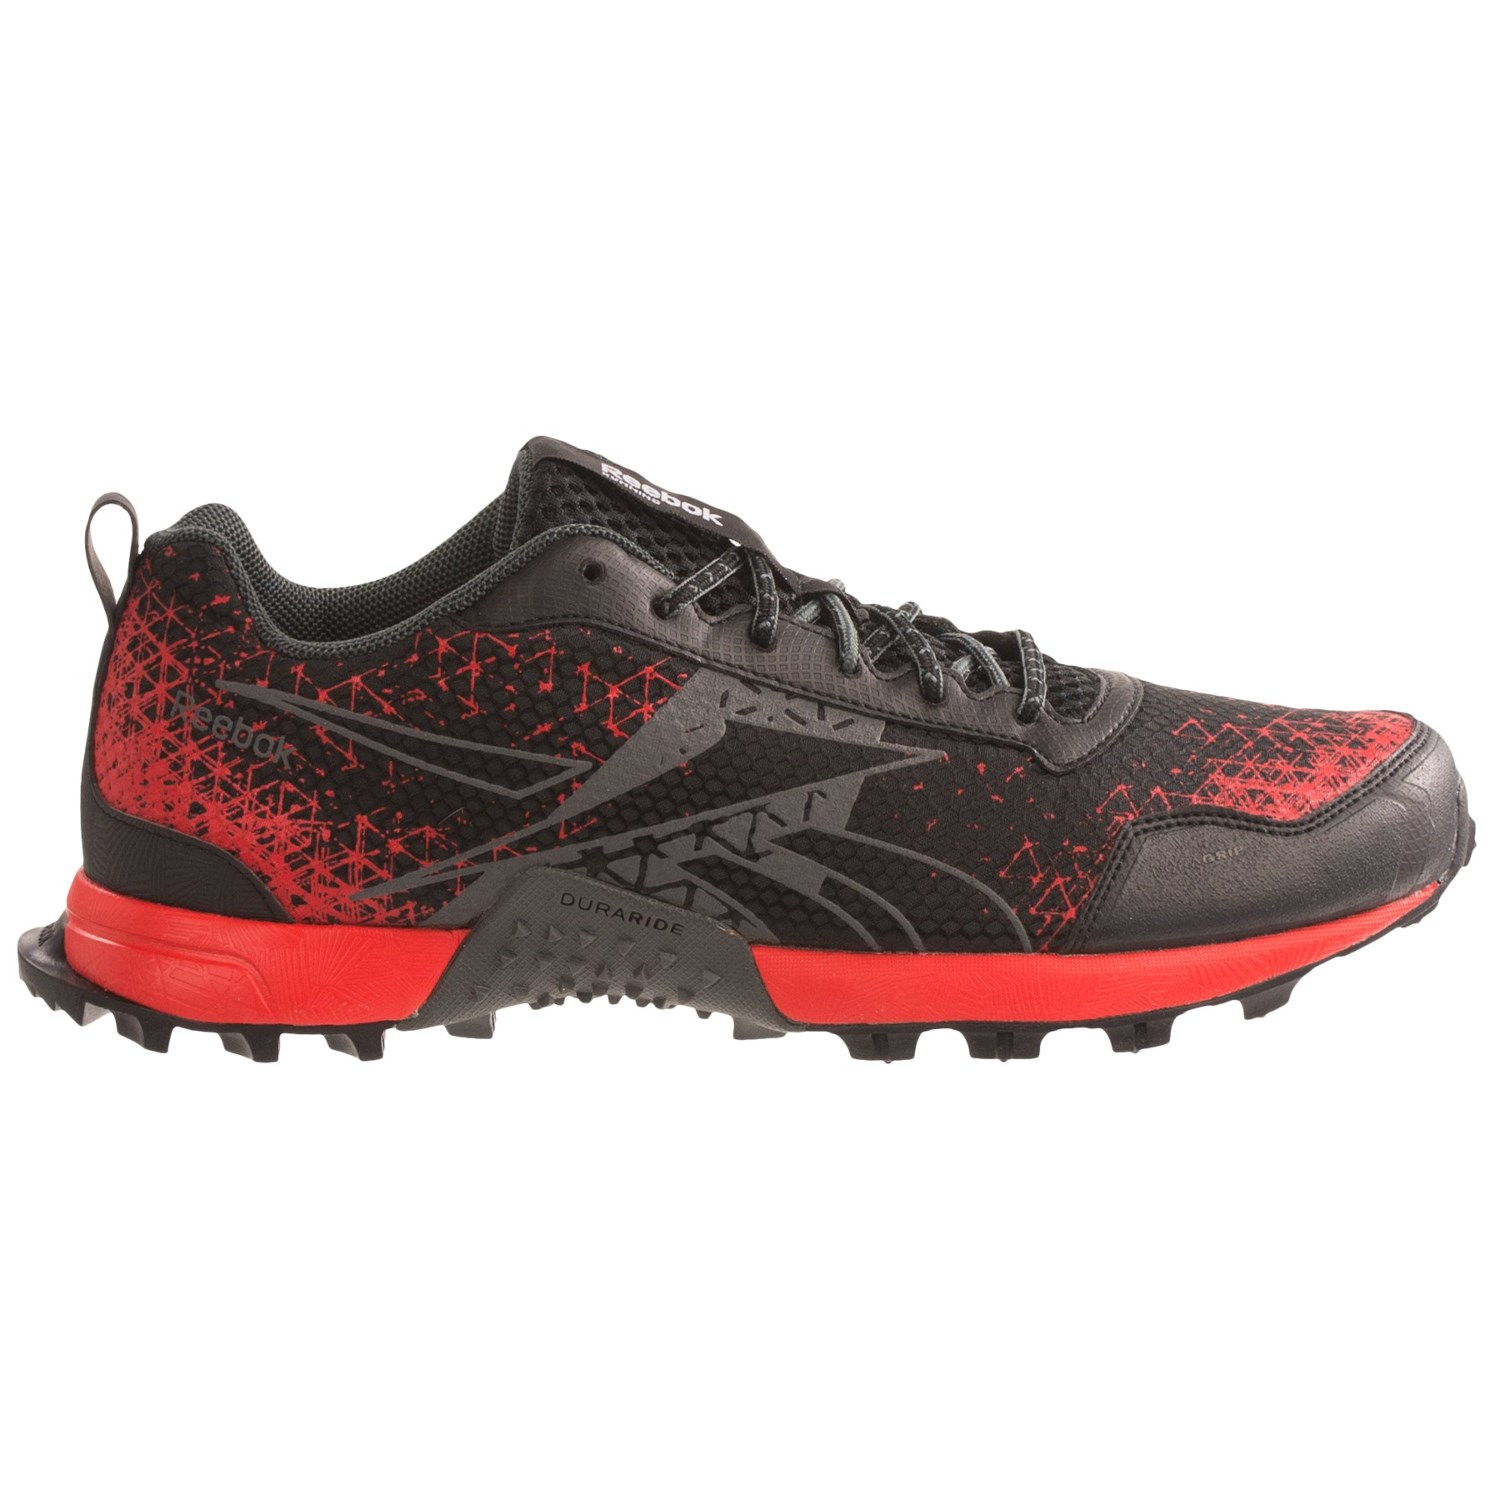 reebok outdoor wild running shoes for men 8327d save 31